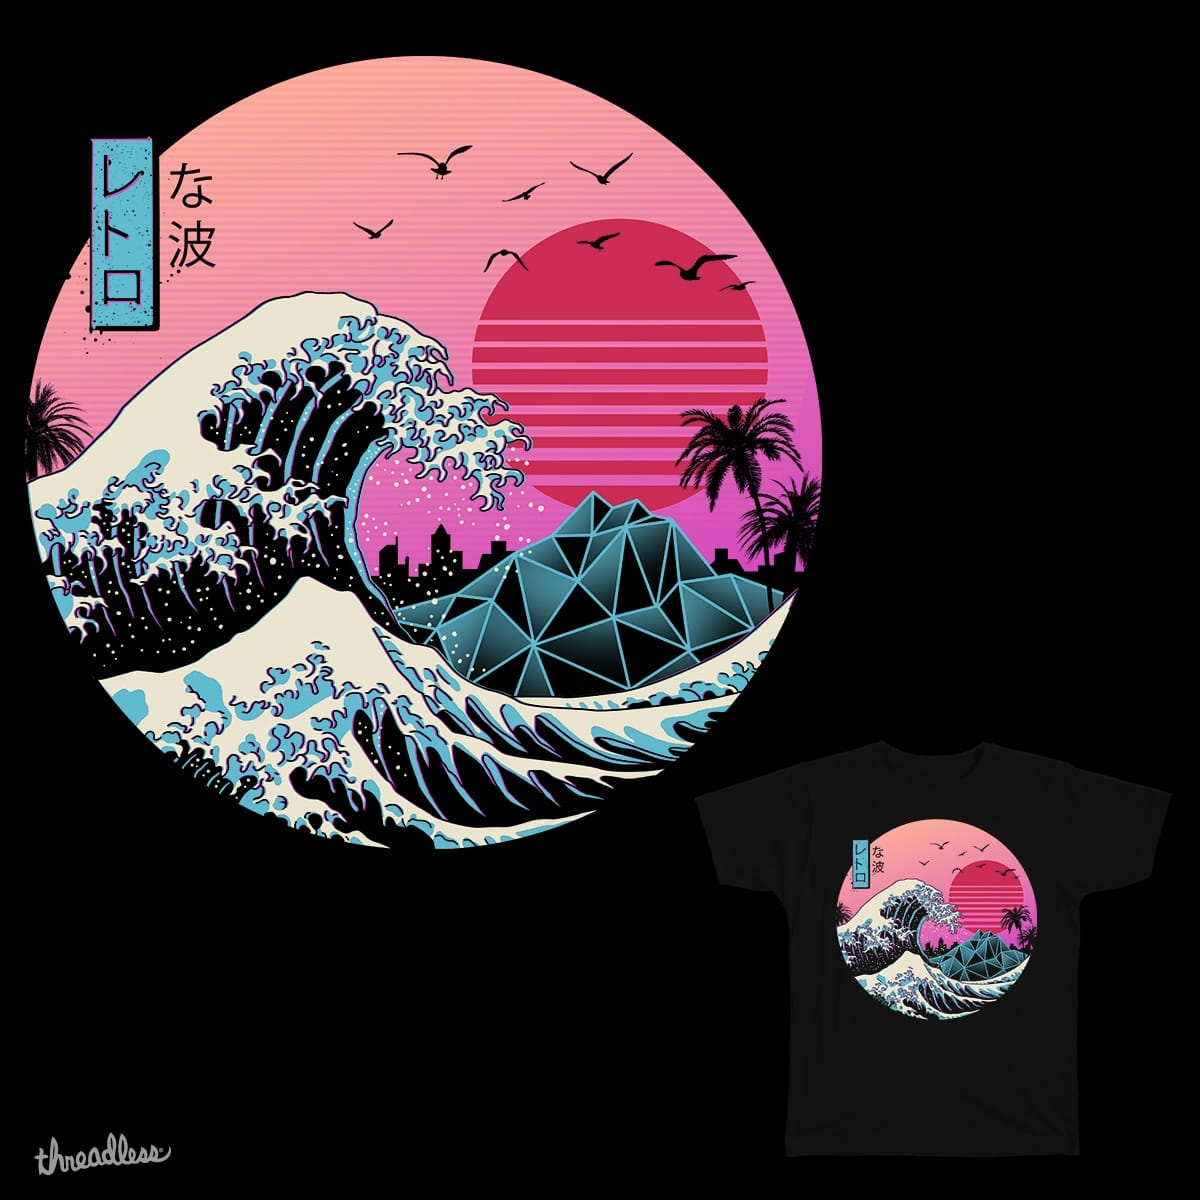 The Great Retro Wave by vincenttrinidad on Threadless